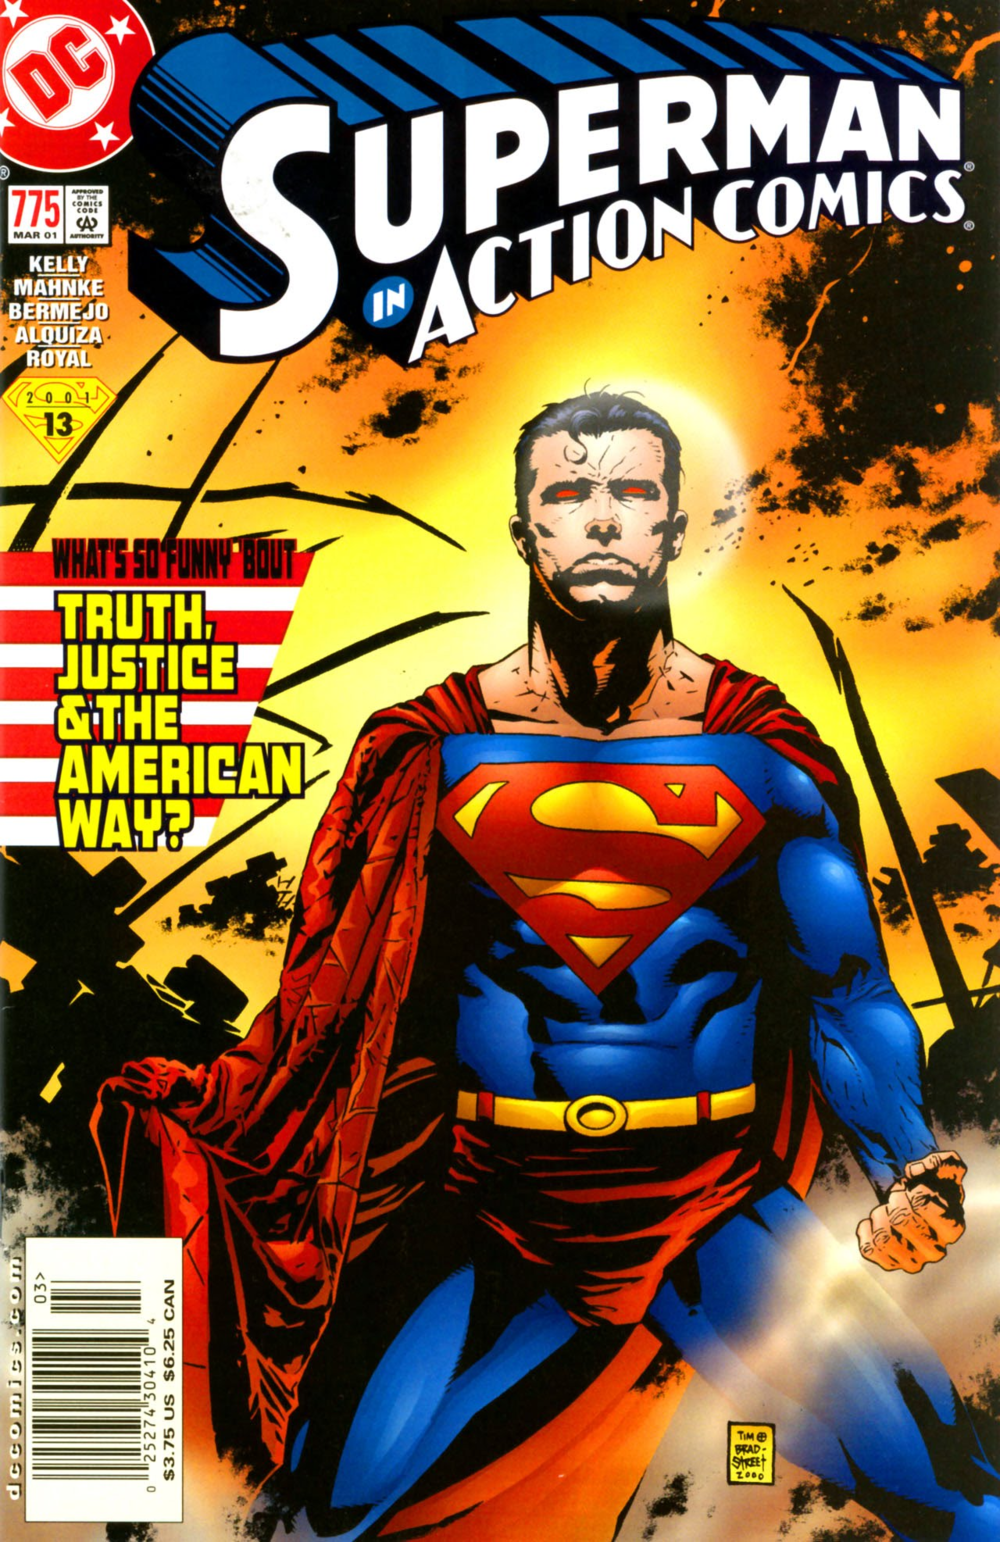 "Cover art to Action Comics (vol. 1) #775, ""What's So Funny About Truth, Justice & the American Way?"" Art by Tim Bradstreet."